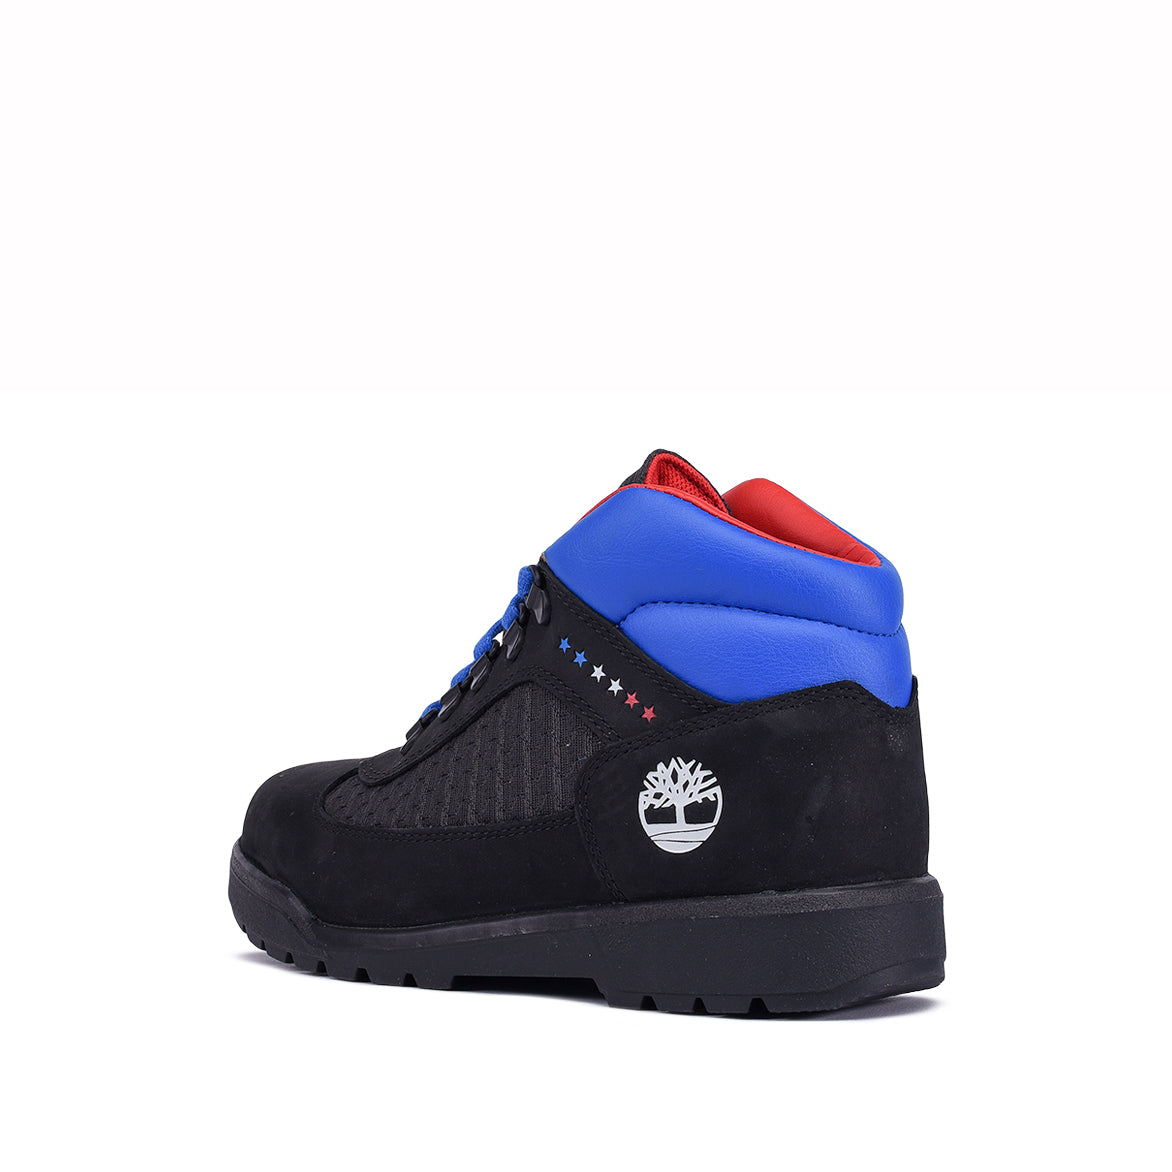 "NBA X TIMBERLAND WATERPROOF FIELD BOOT (GS) ""76ERS"""